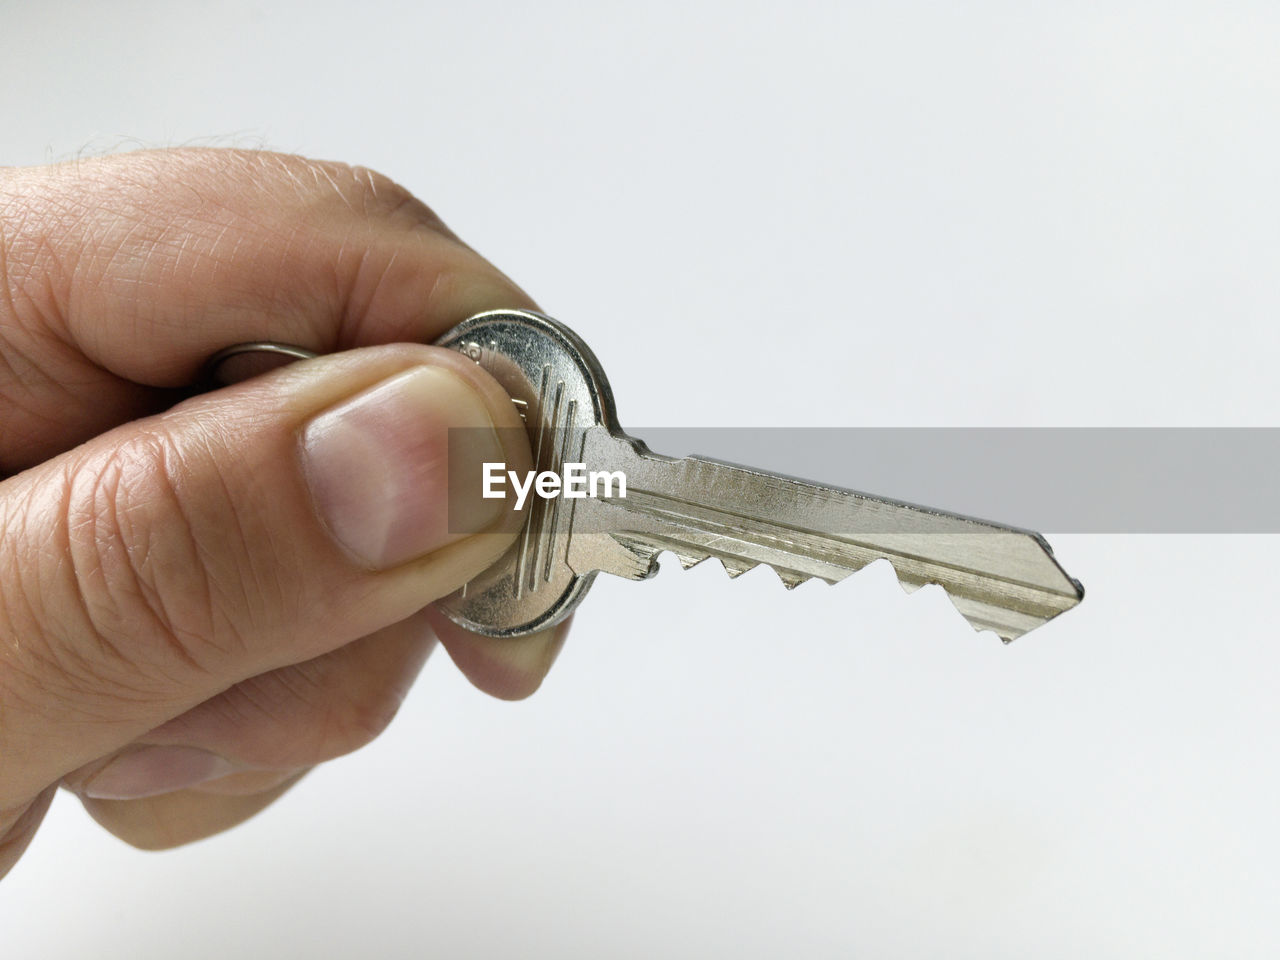 Cropped hand of man holding key against white background